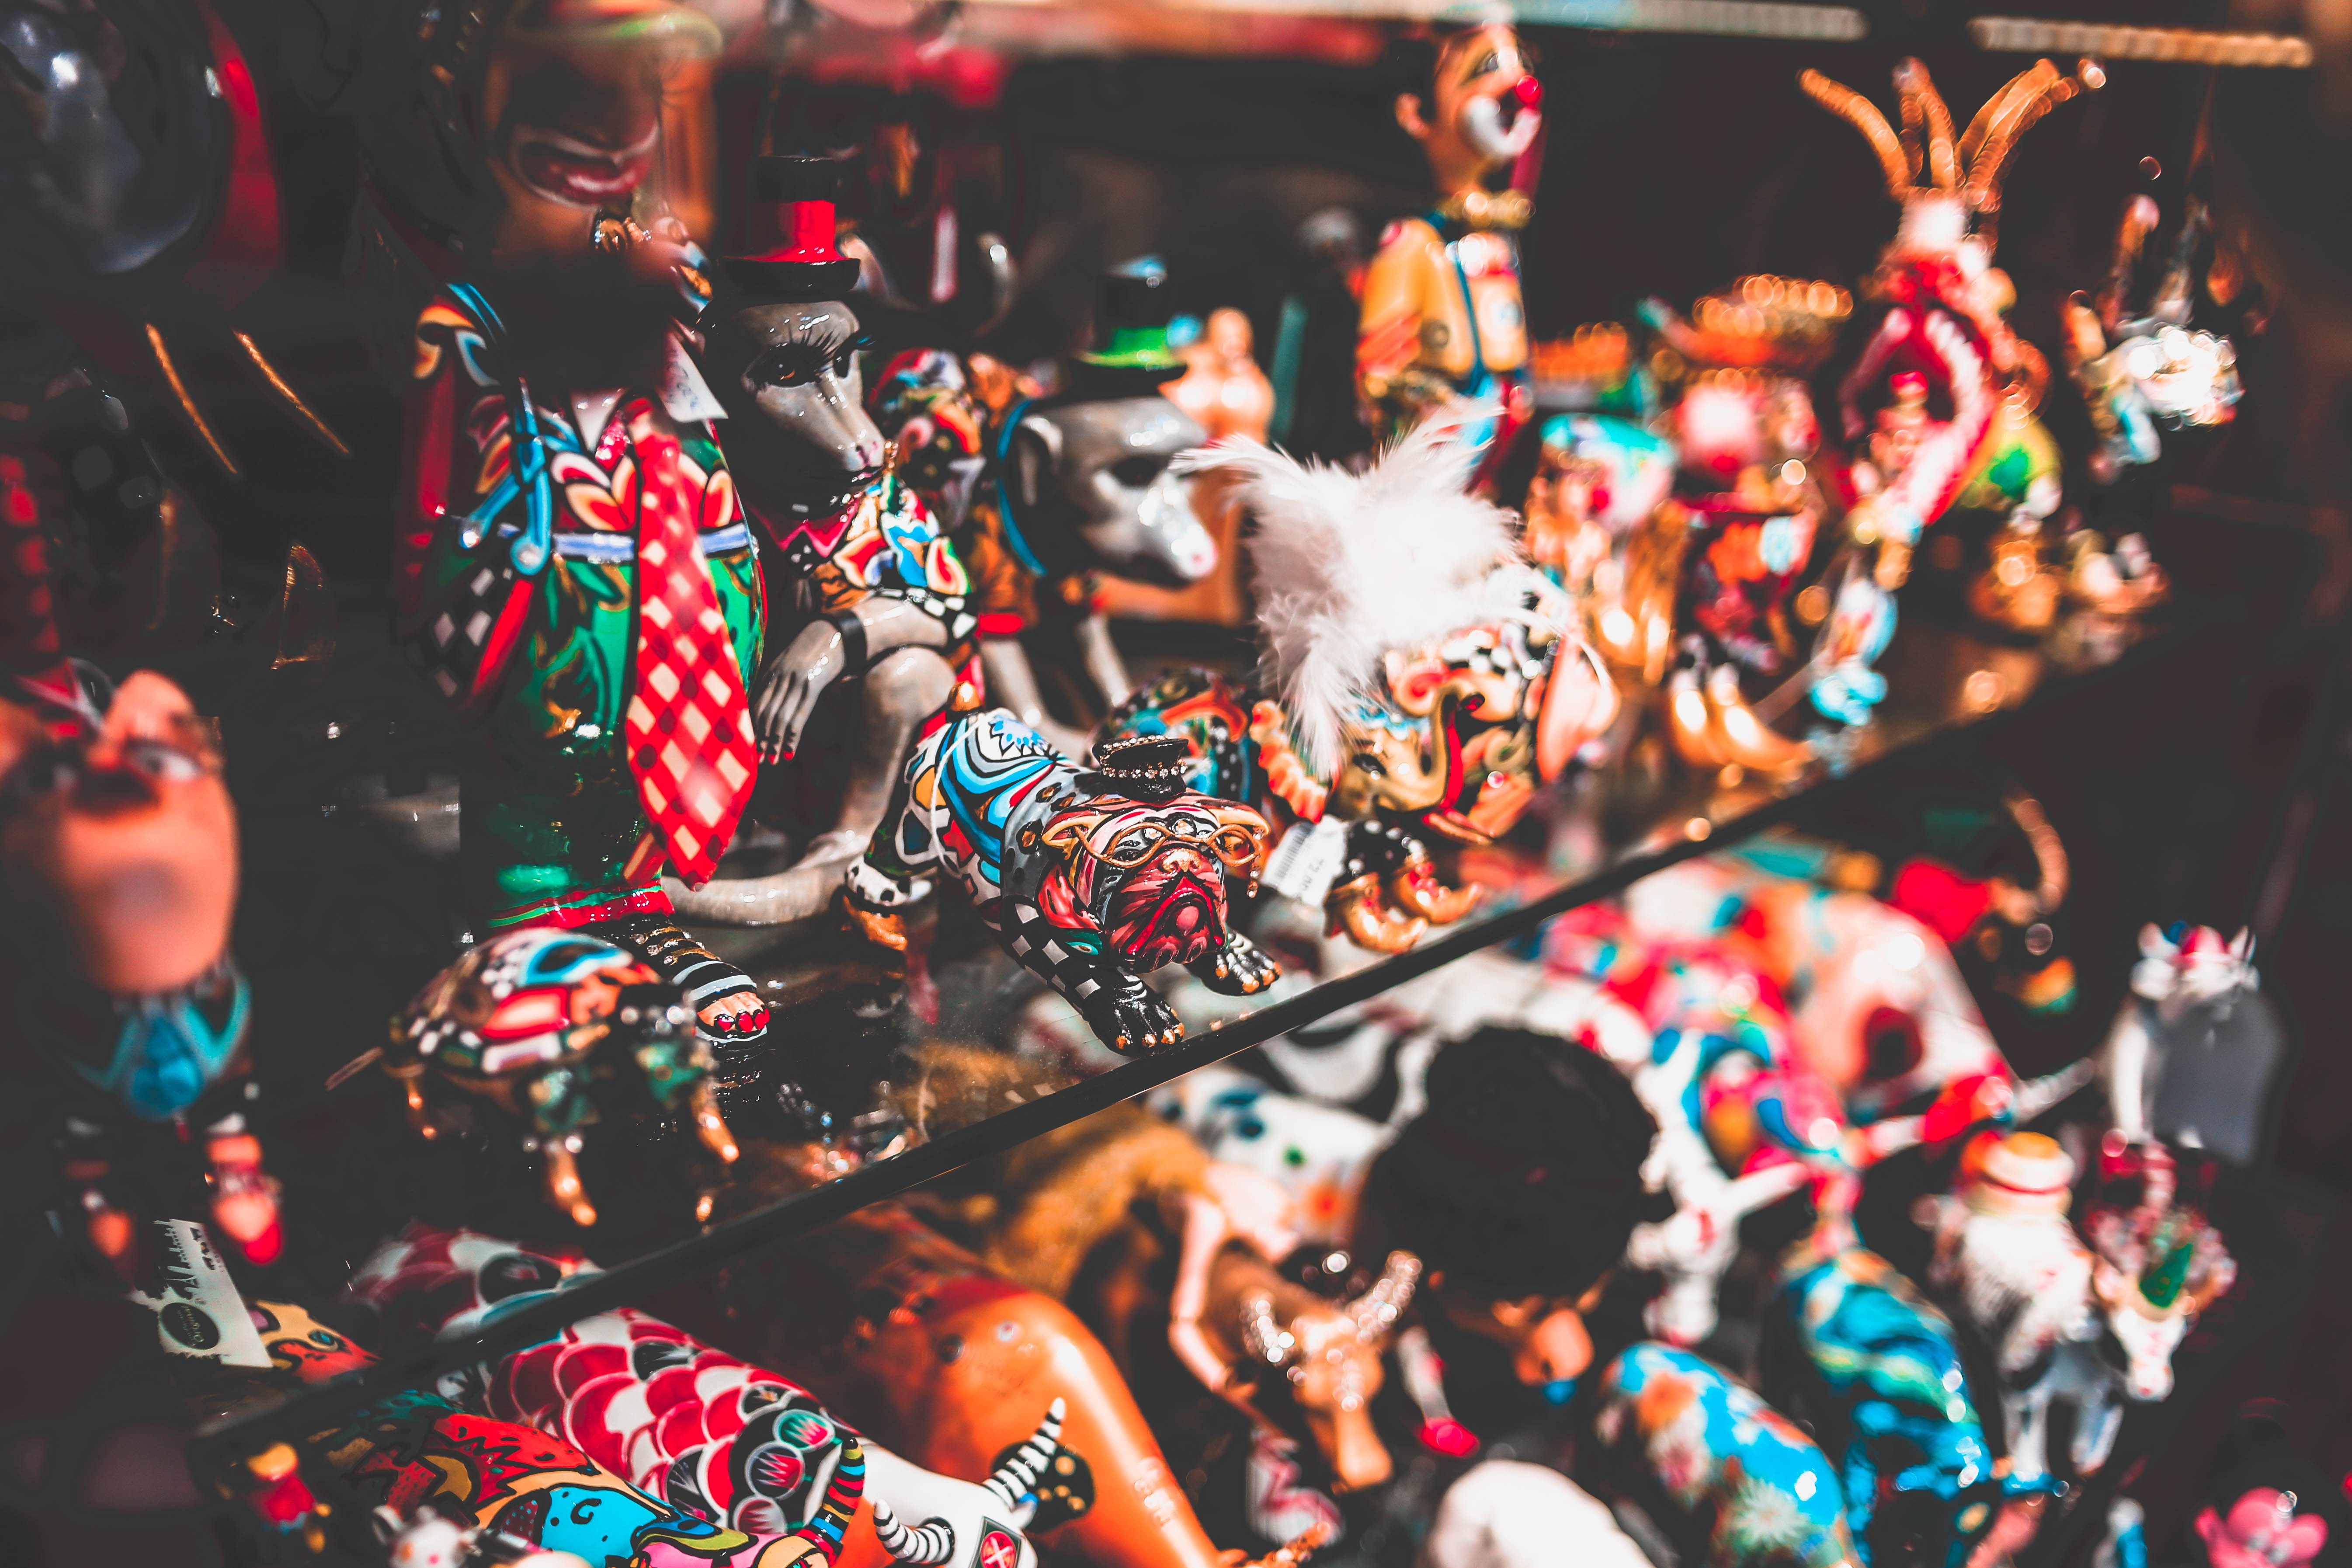 Trinkets, Souvenirs To Bring Back From Thailand